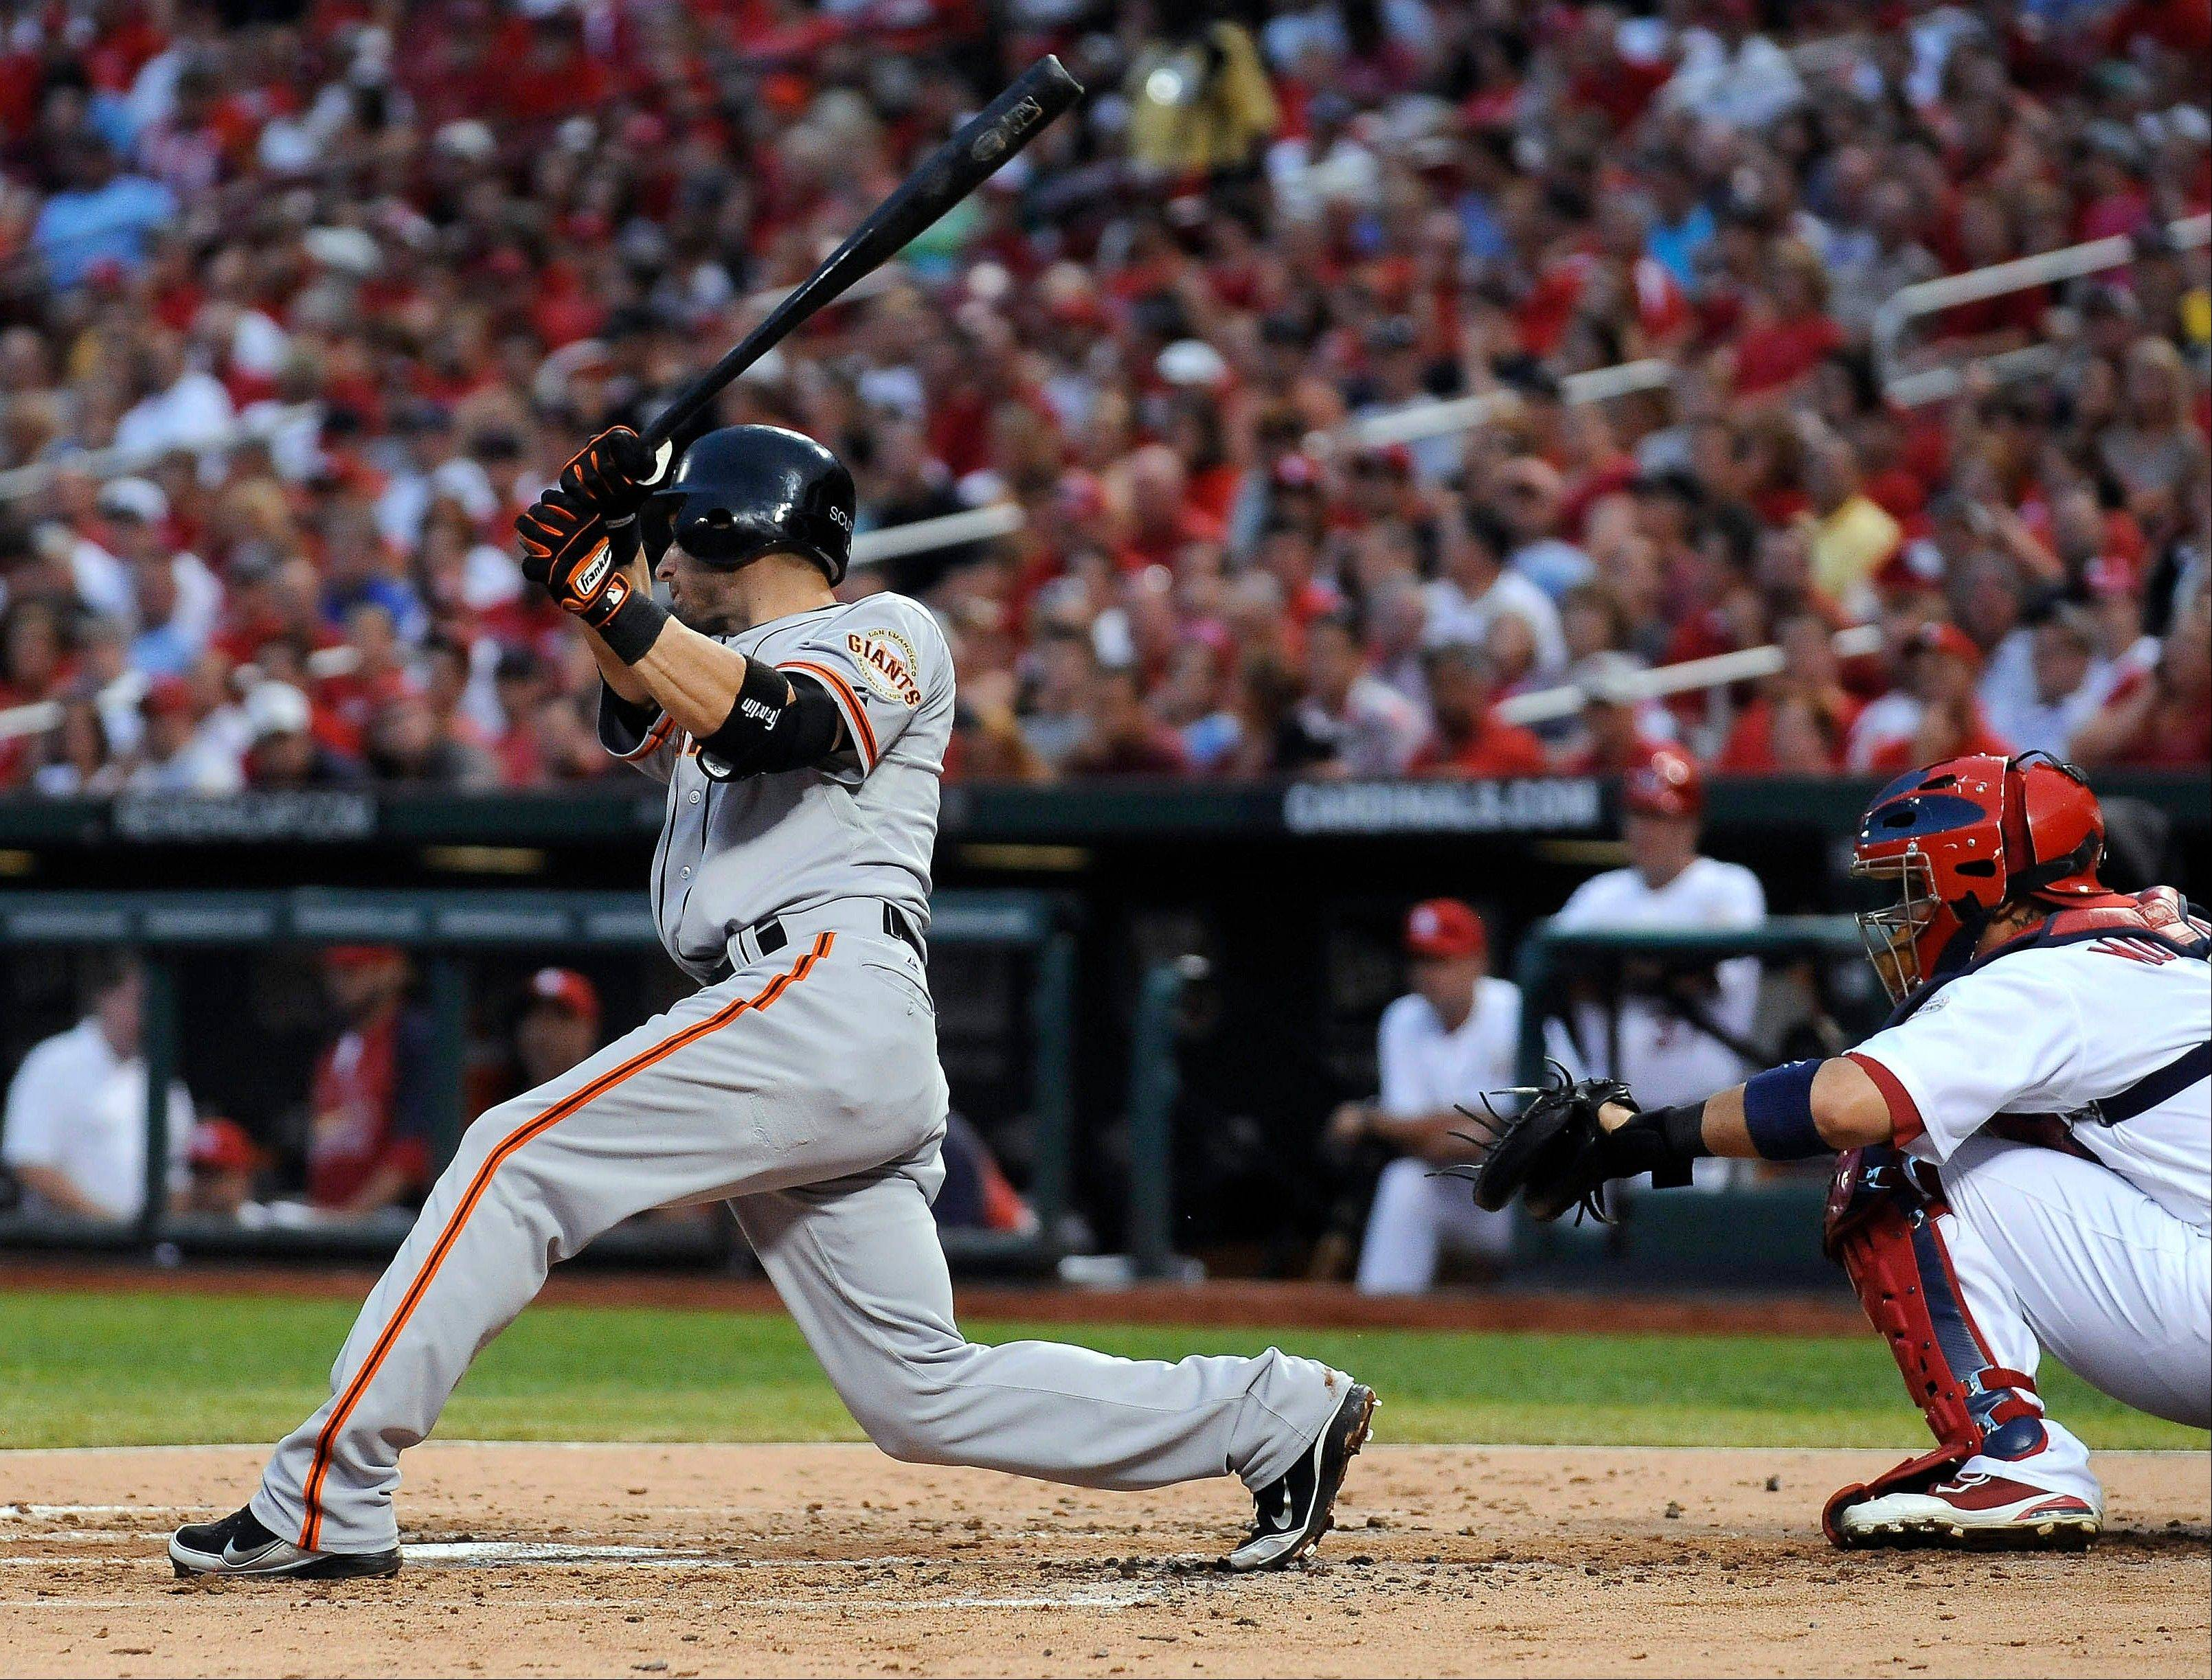 San Francisco's Marco Scutaro hits an RBI single during the third inning Wednesday in St. Louis. He followed with a two-run double in the eighth and a grand slam in the ninth.